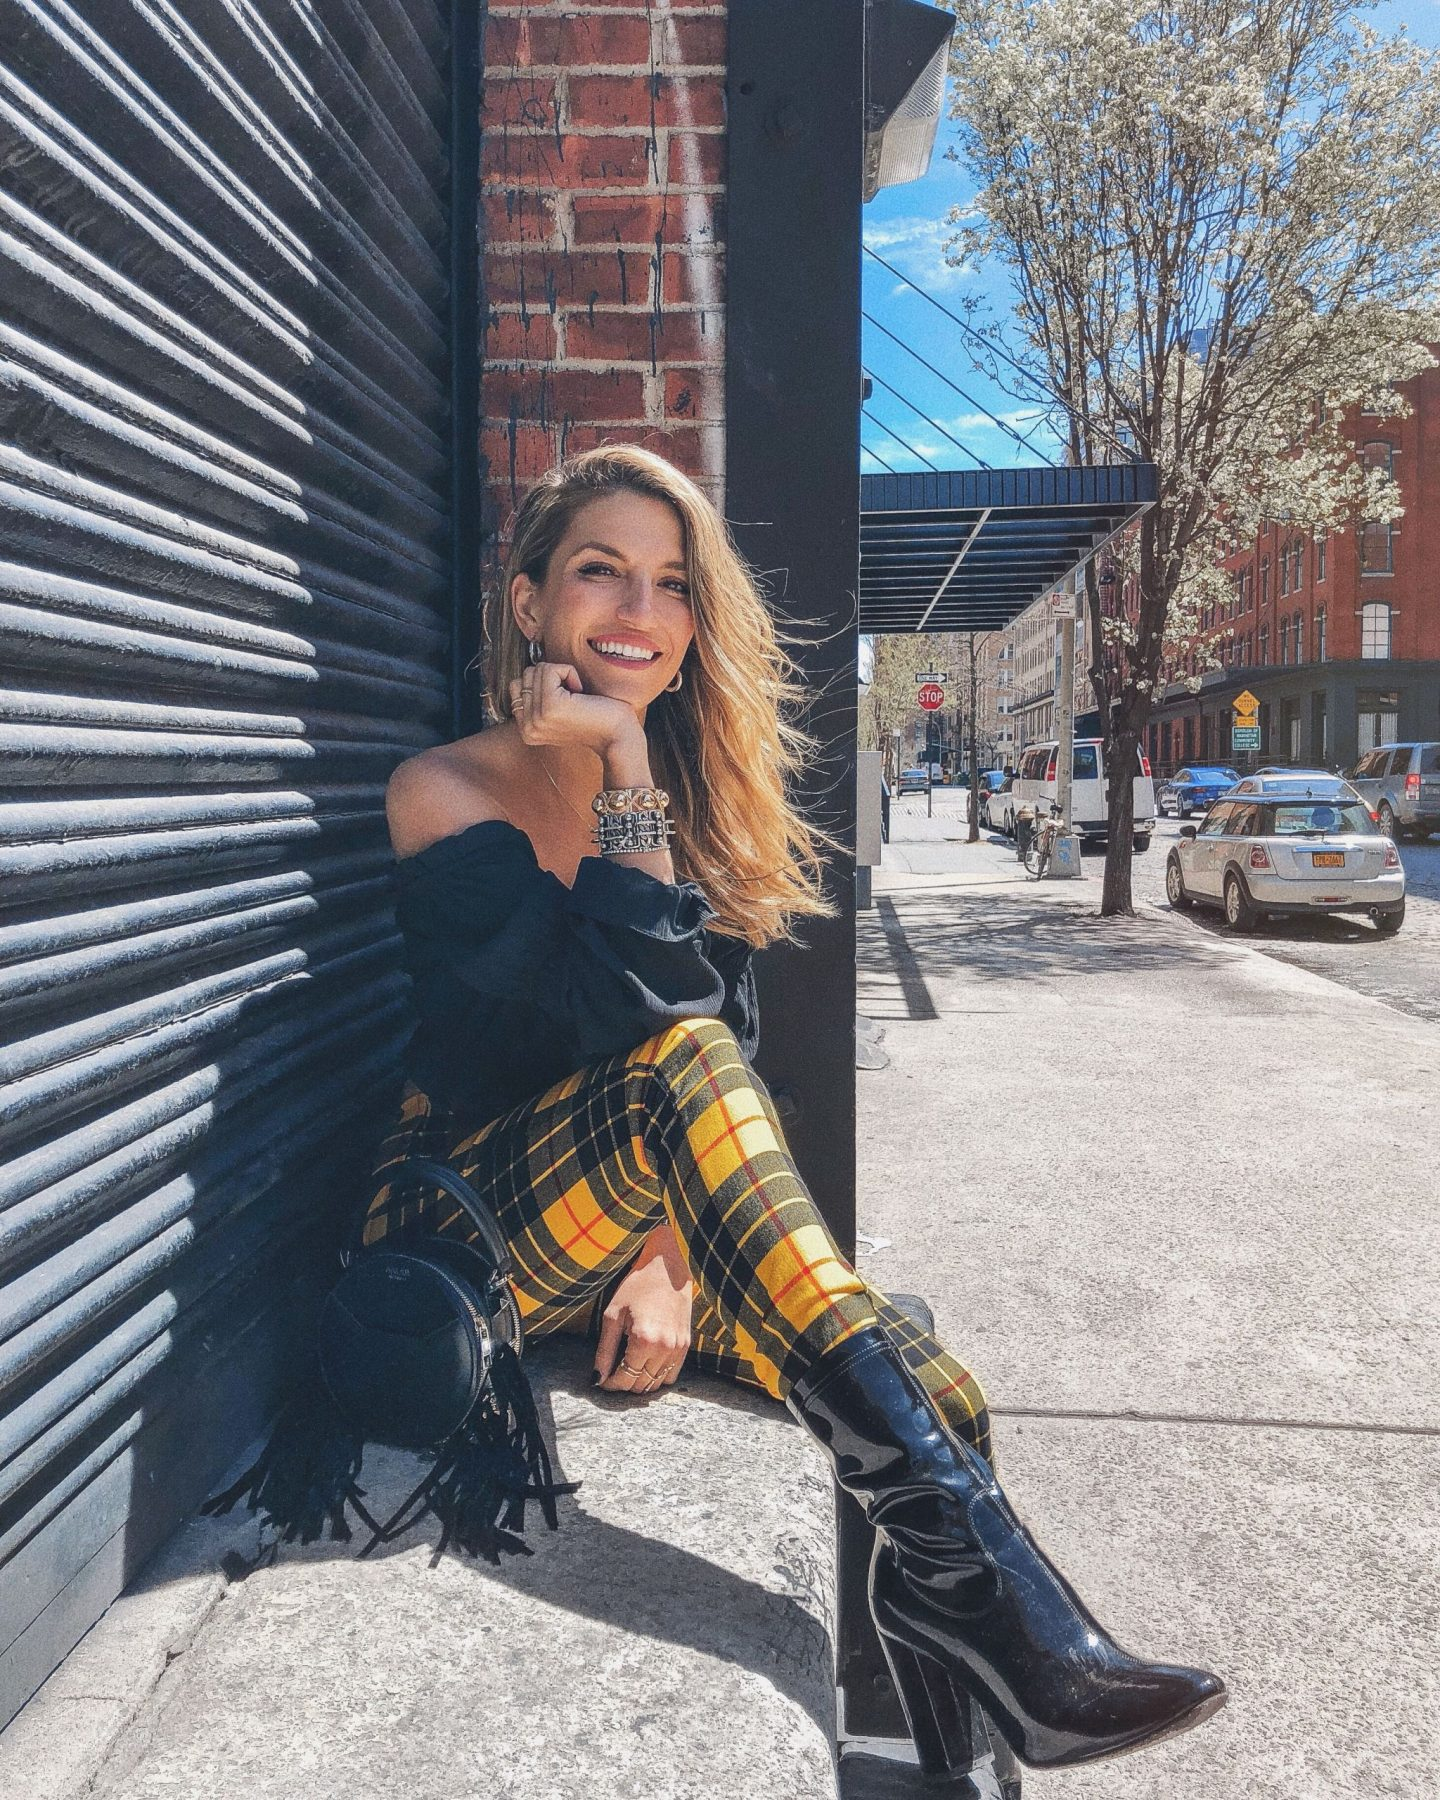 Cassandra DiMicco, Cass DiMicco, Dressed For Dreams, NYC, New York City, New York, Street Style NYC, Street Style 2018, NYC Street Style Street Style Outfits, 2018 Trends, NYC Fashion Blogger, Tiger mist outfit, yellow plaid pants, patent leather booties, salar bag, black off the shoulder top